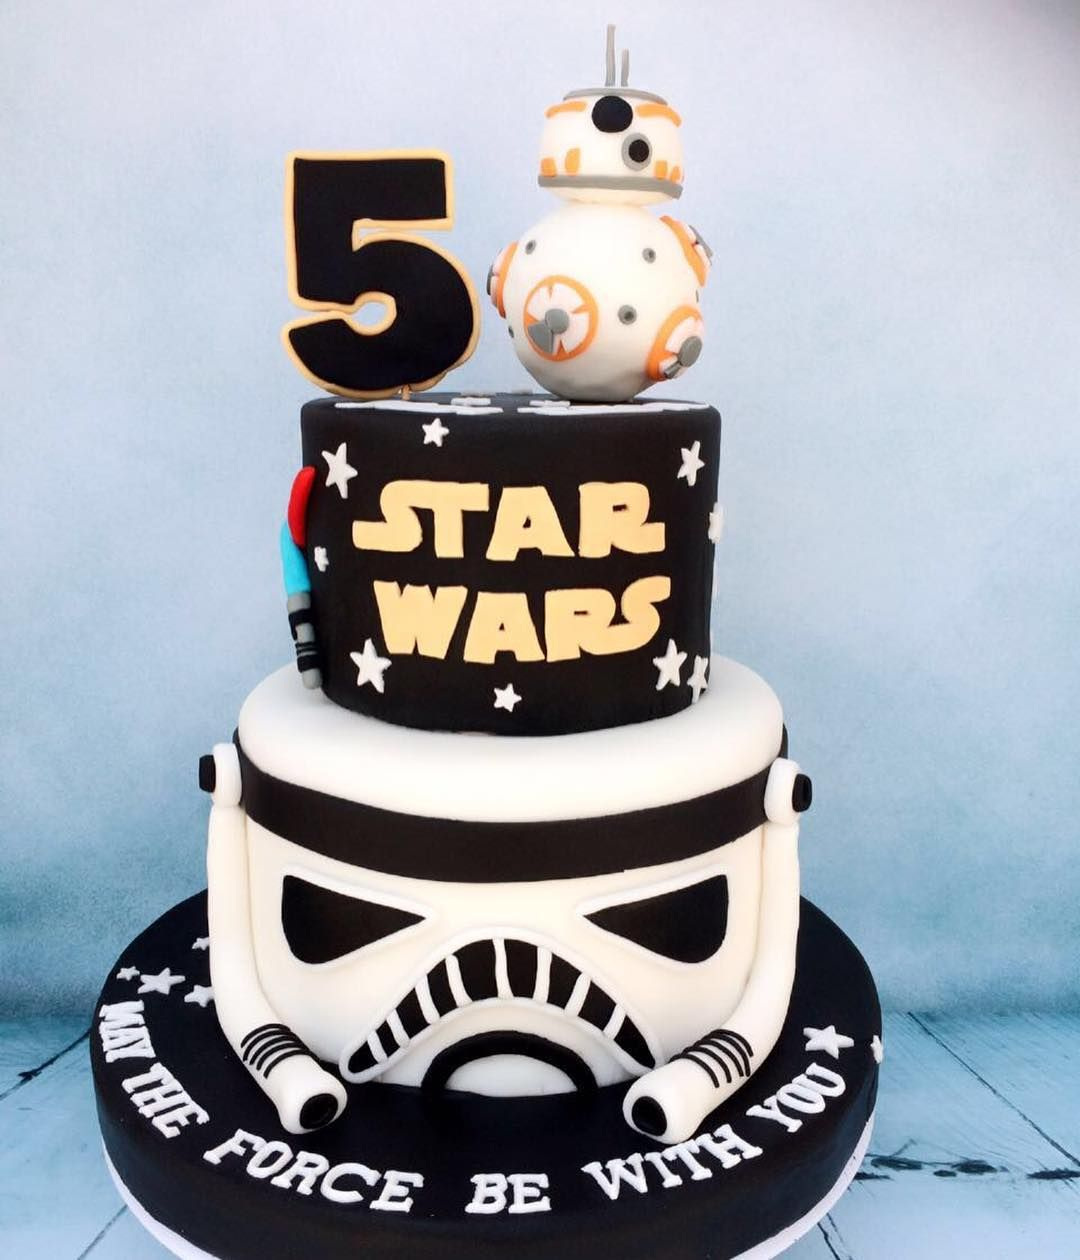 Swell The Force Is Strong With This One Cakeinthecitydubai Personalised Birthday Cards Paralily Jamesorg